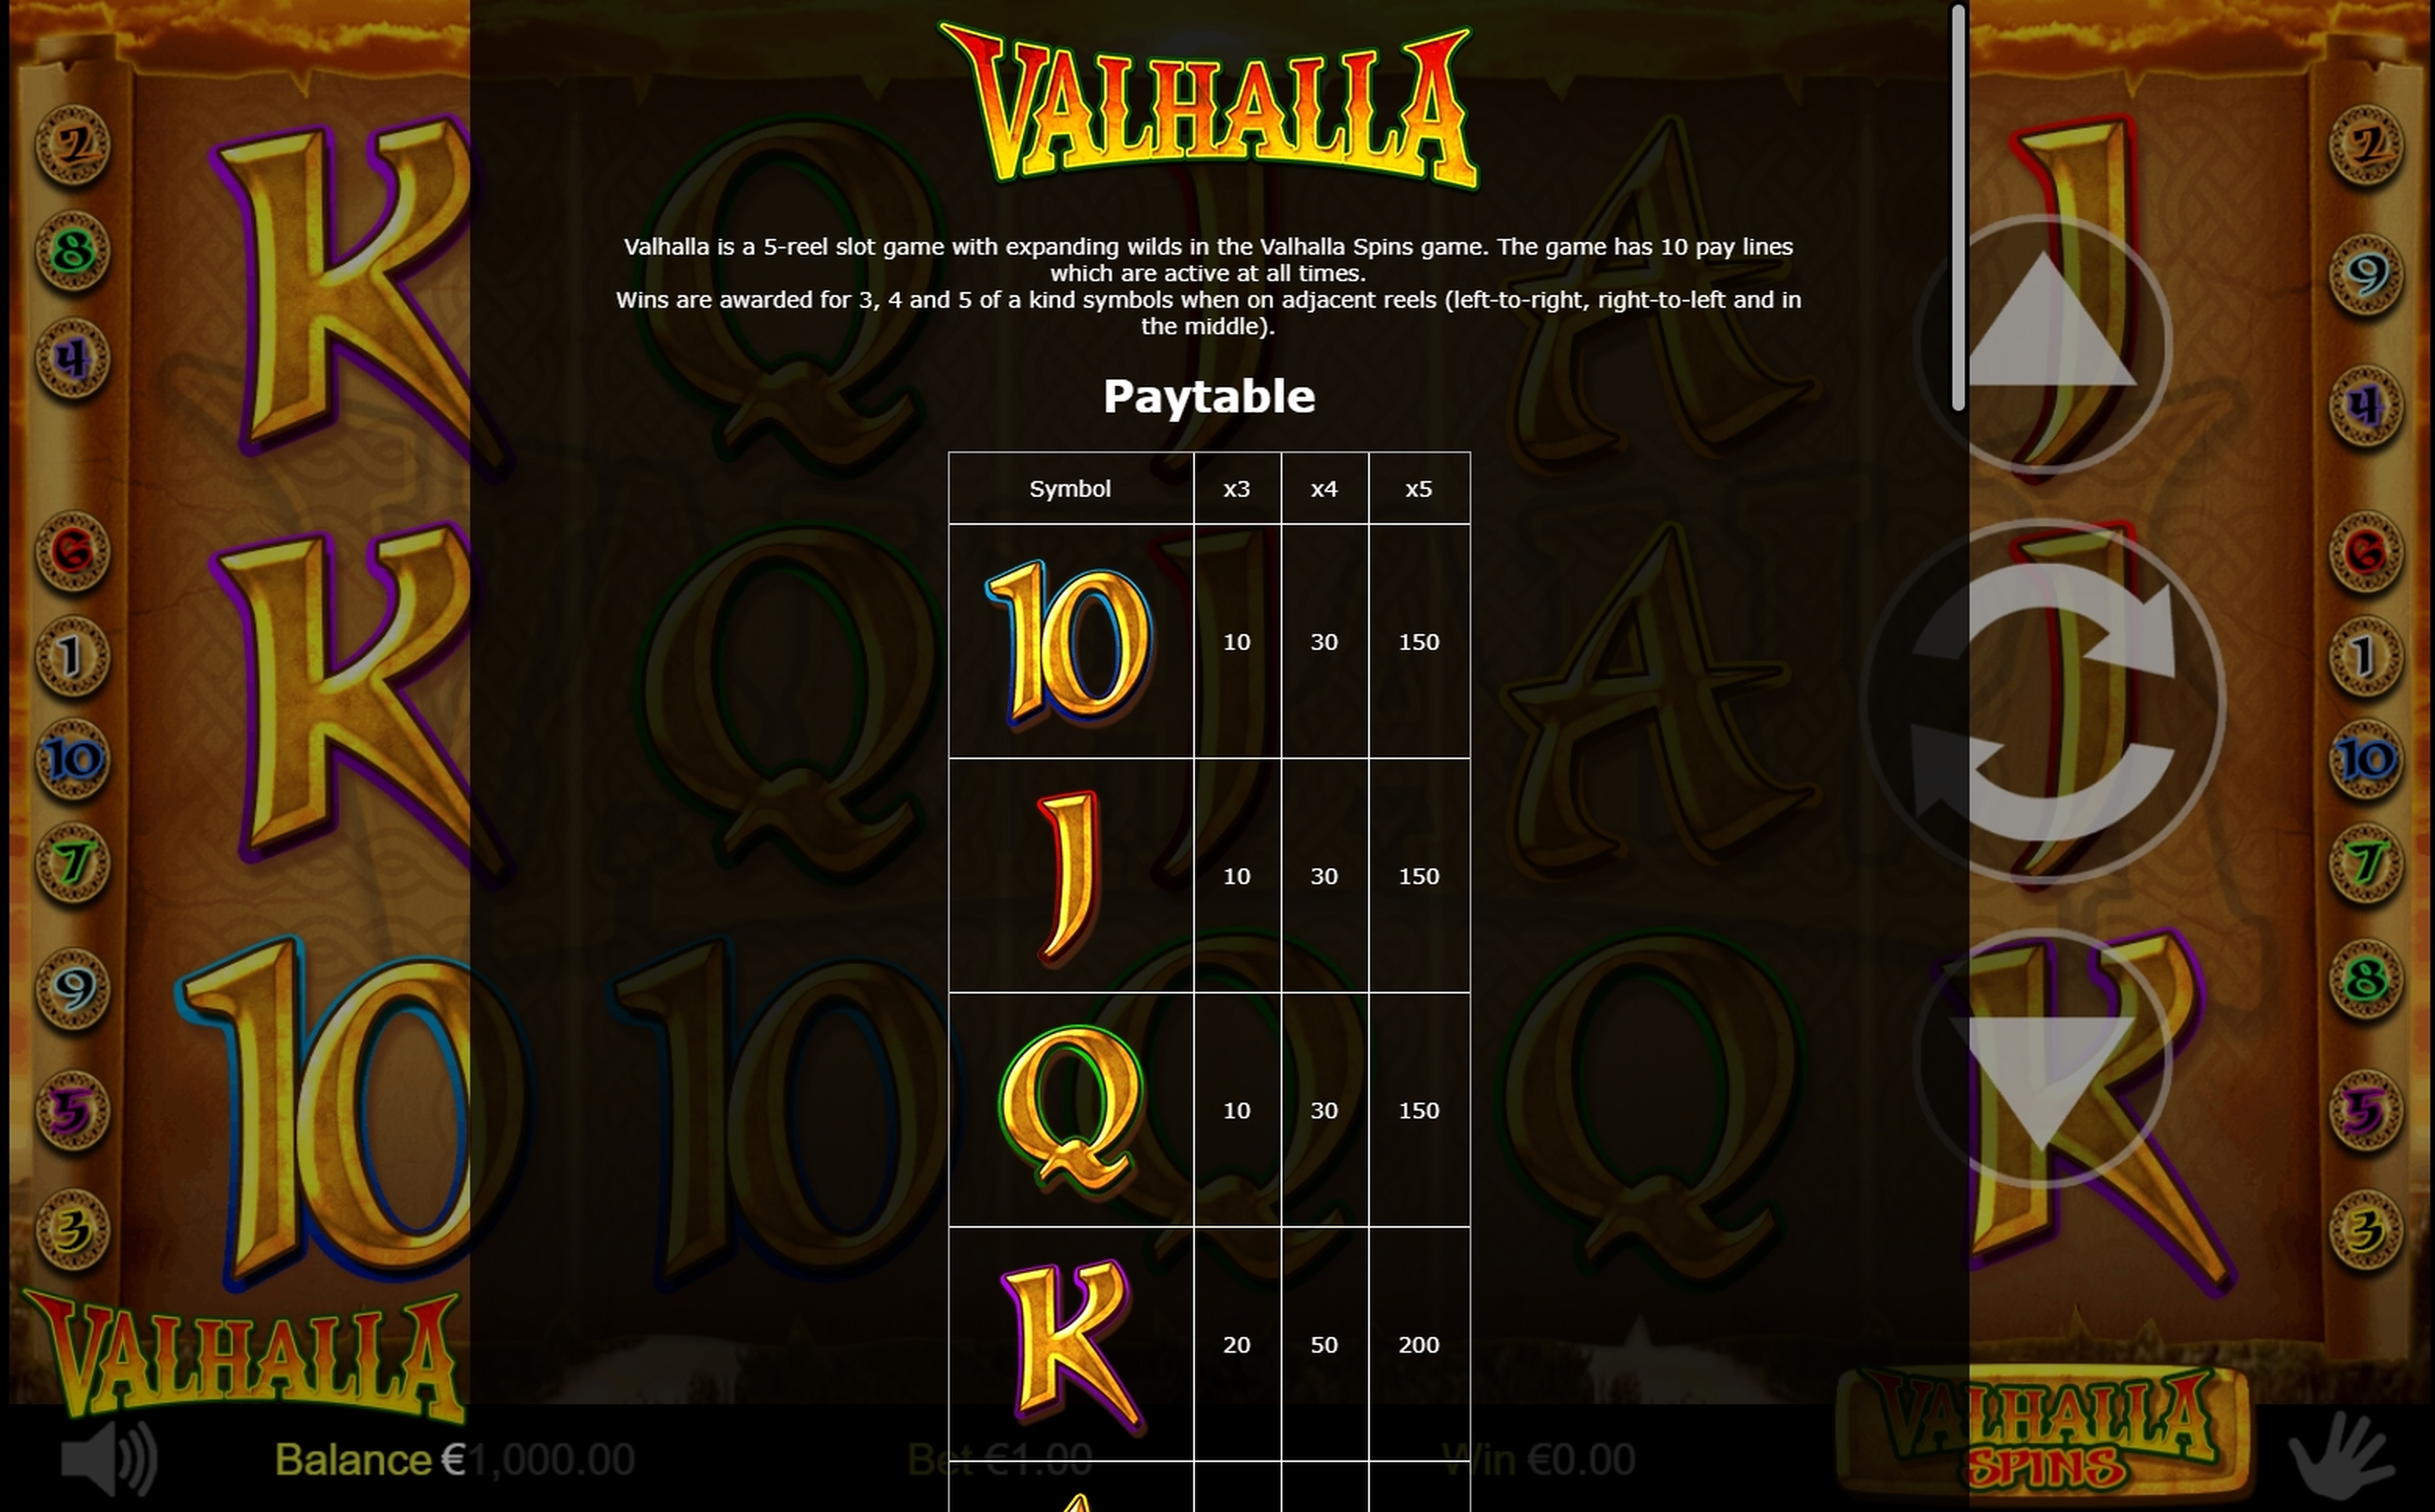 Info of Valhalla (Betdigital) Slot Game by Betdigital